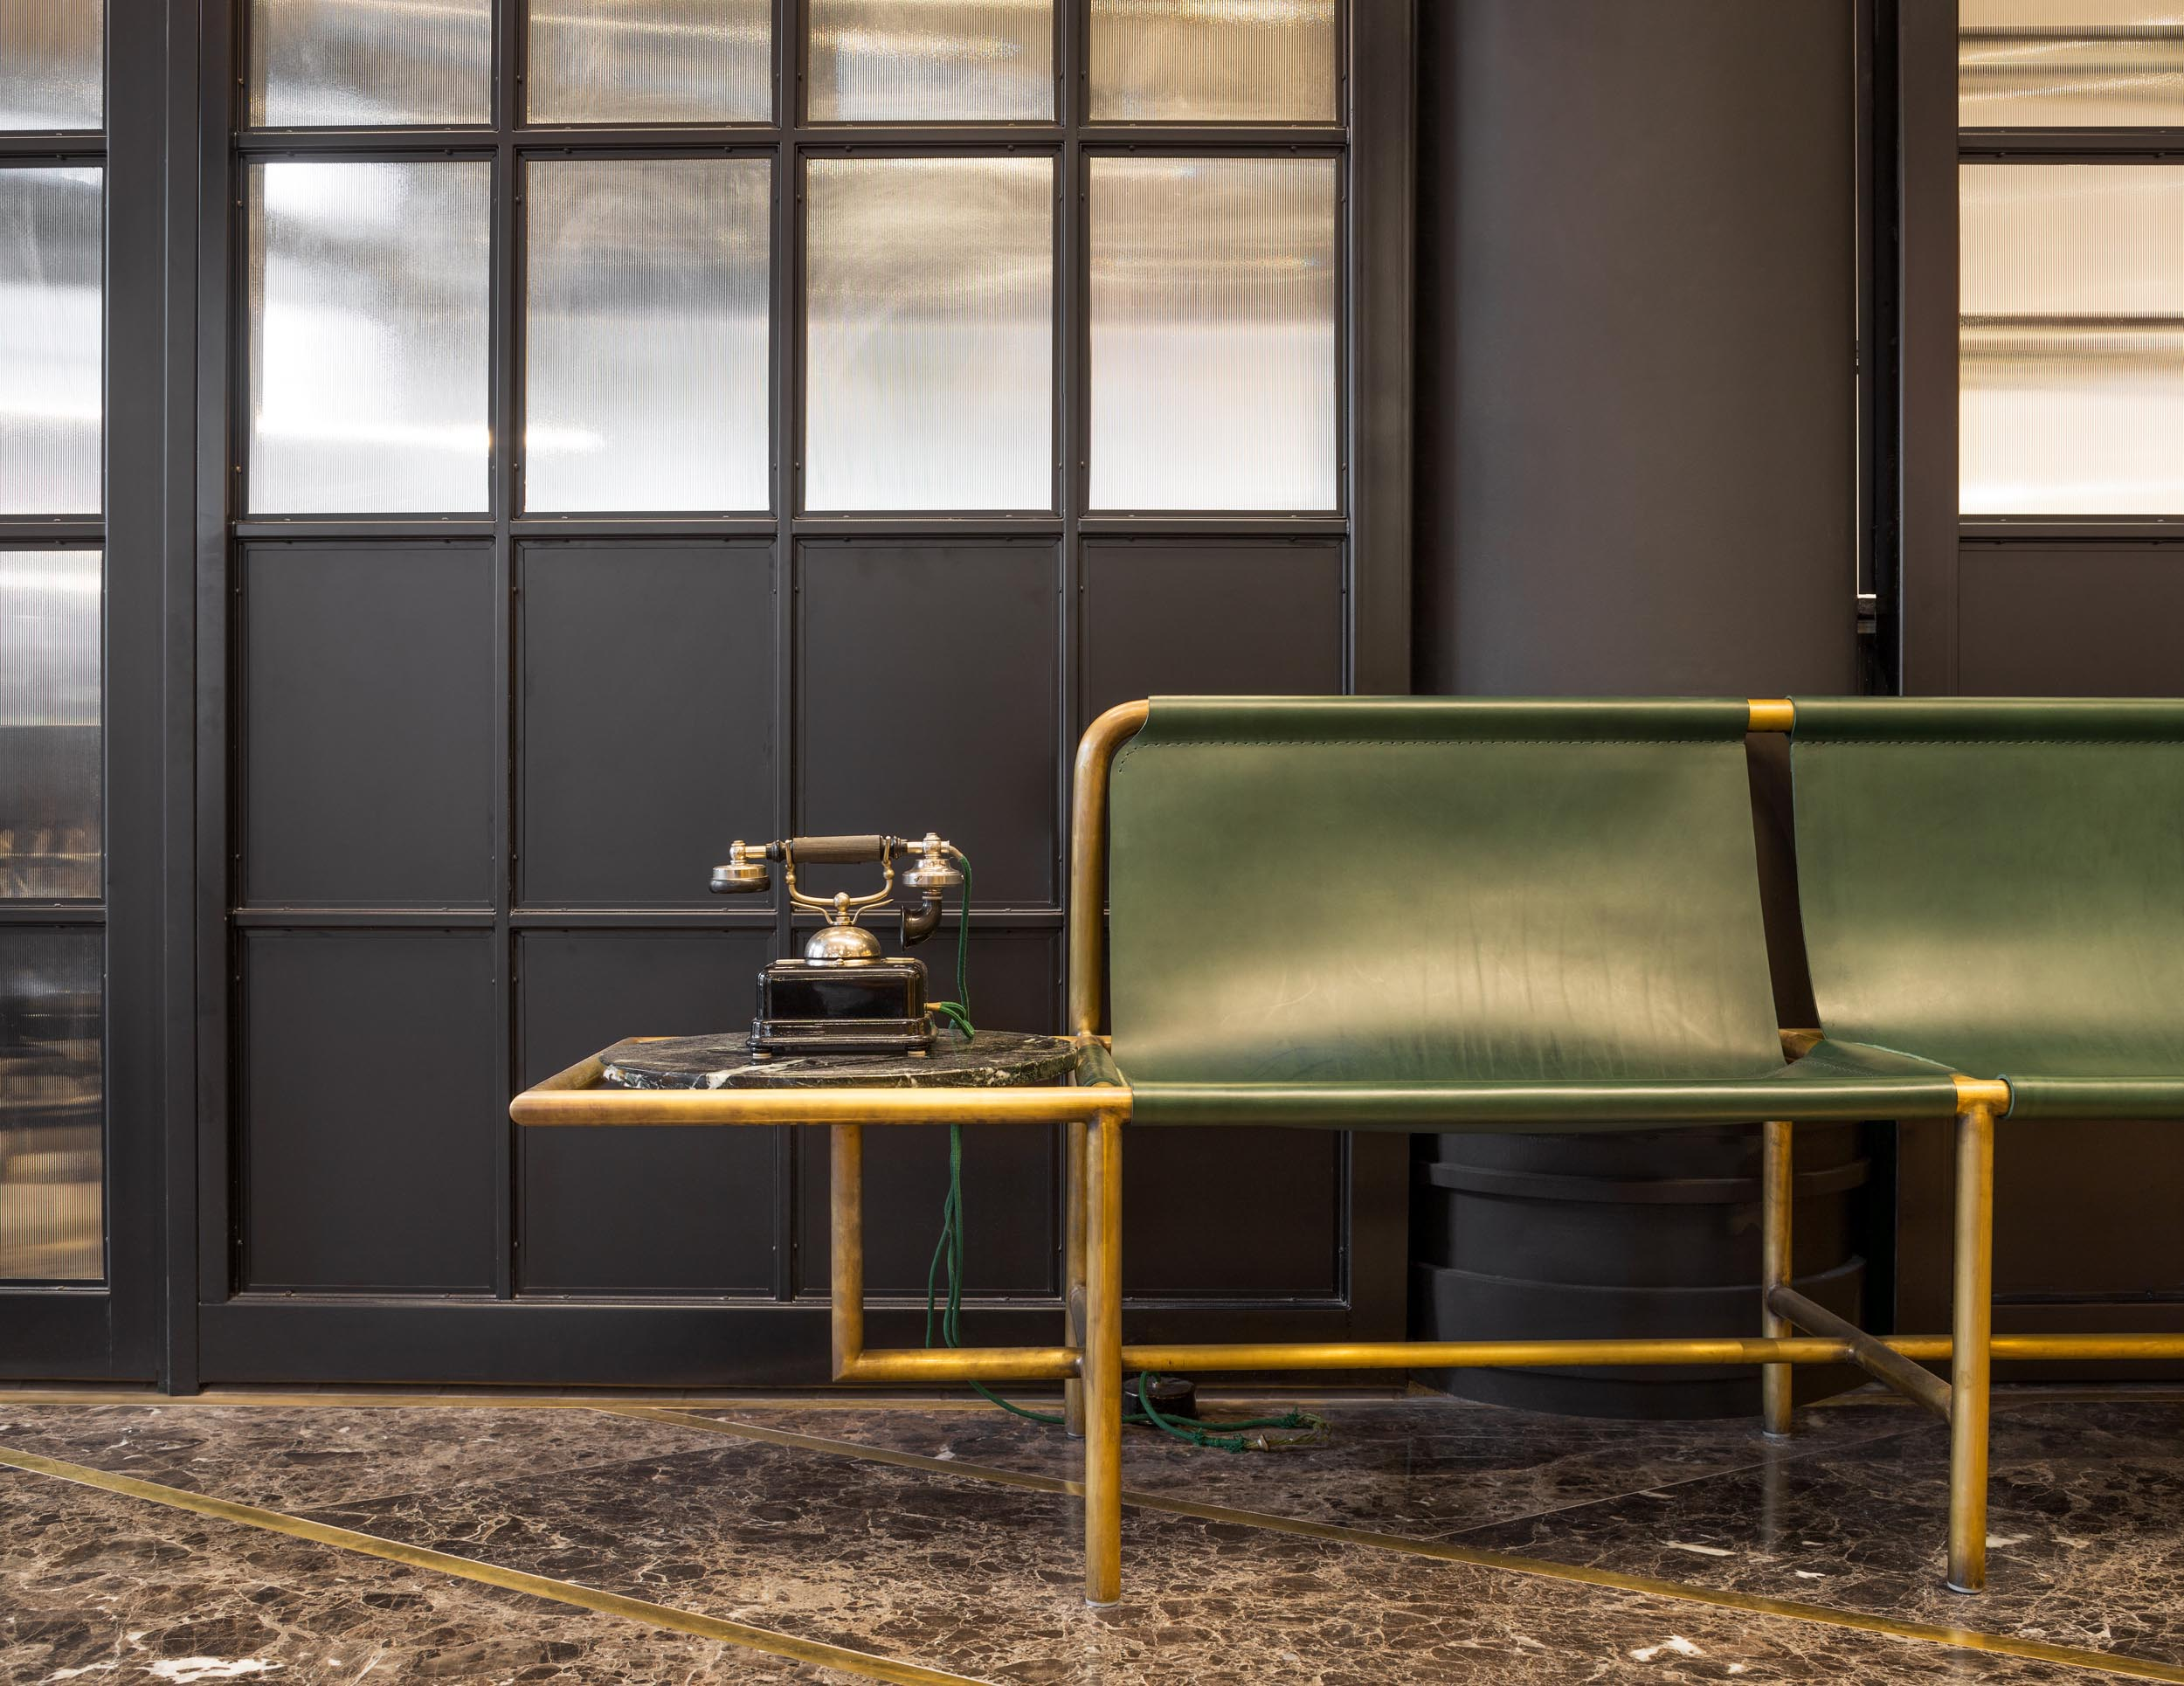 Interior Design Style at The Broadview Hotel Toronto Photography by Worker Bee Supply